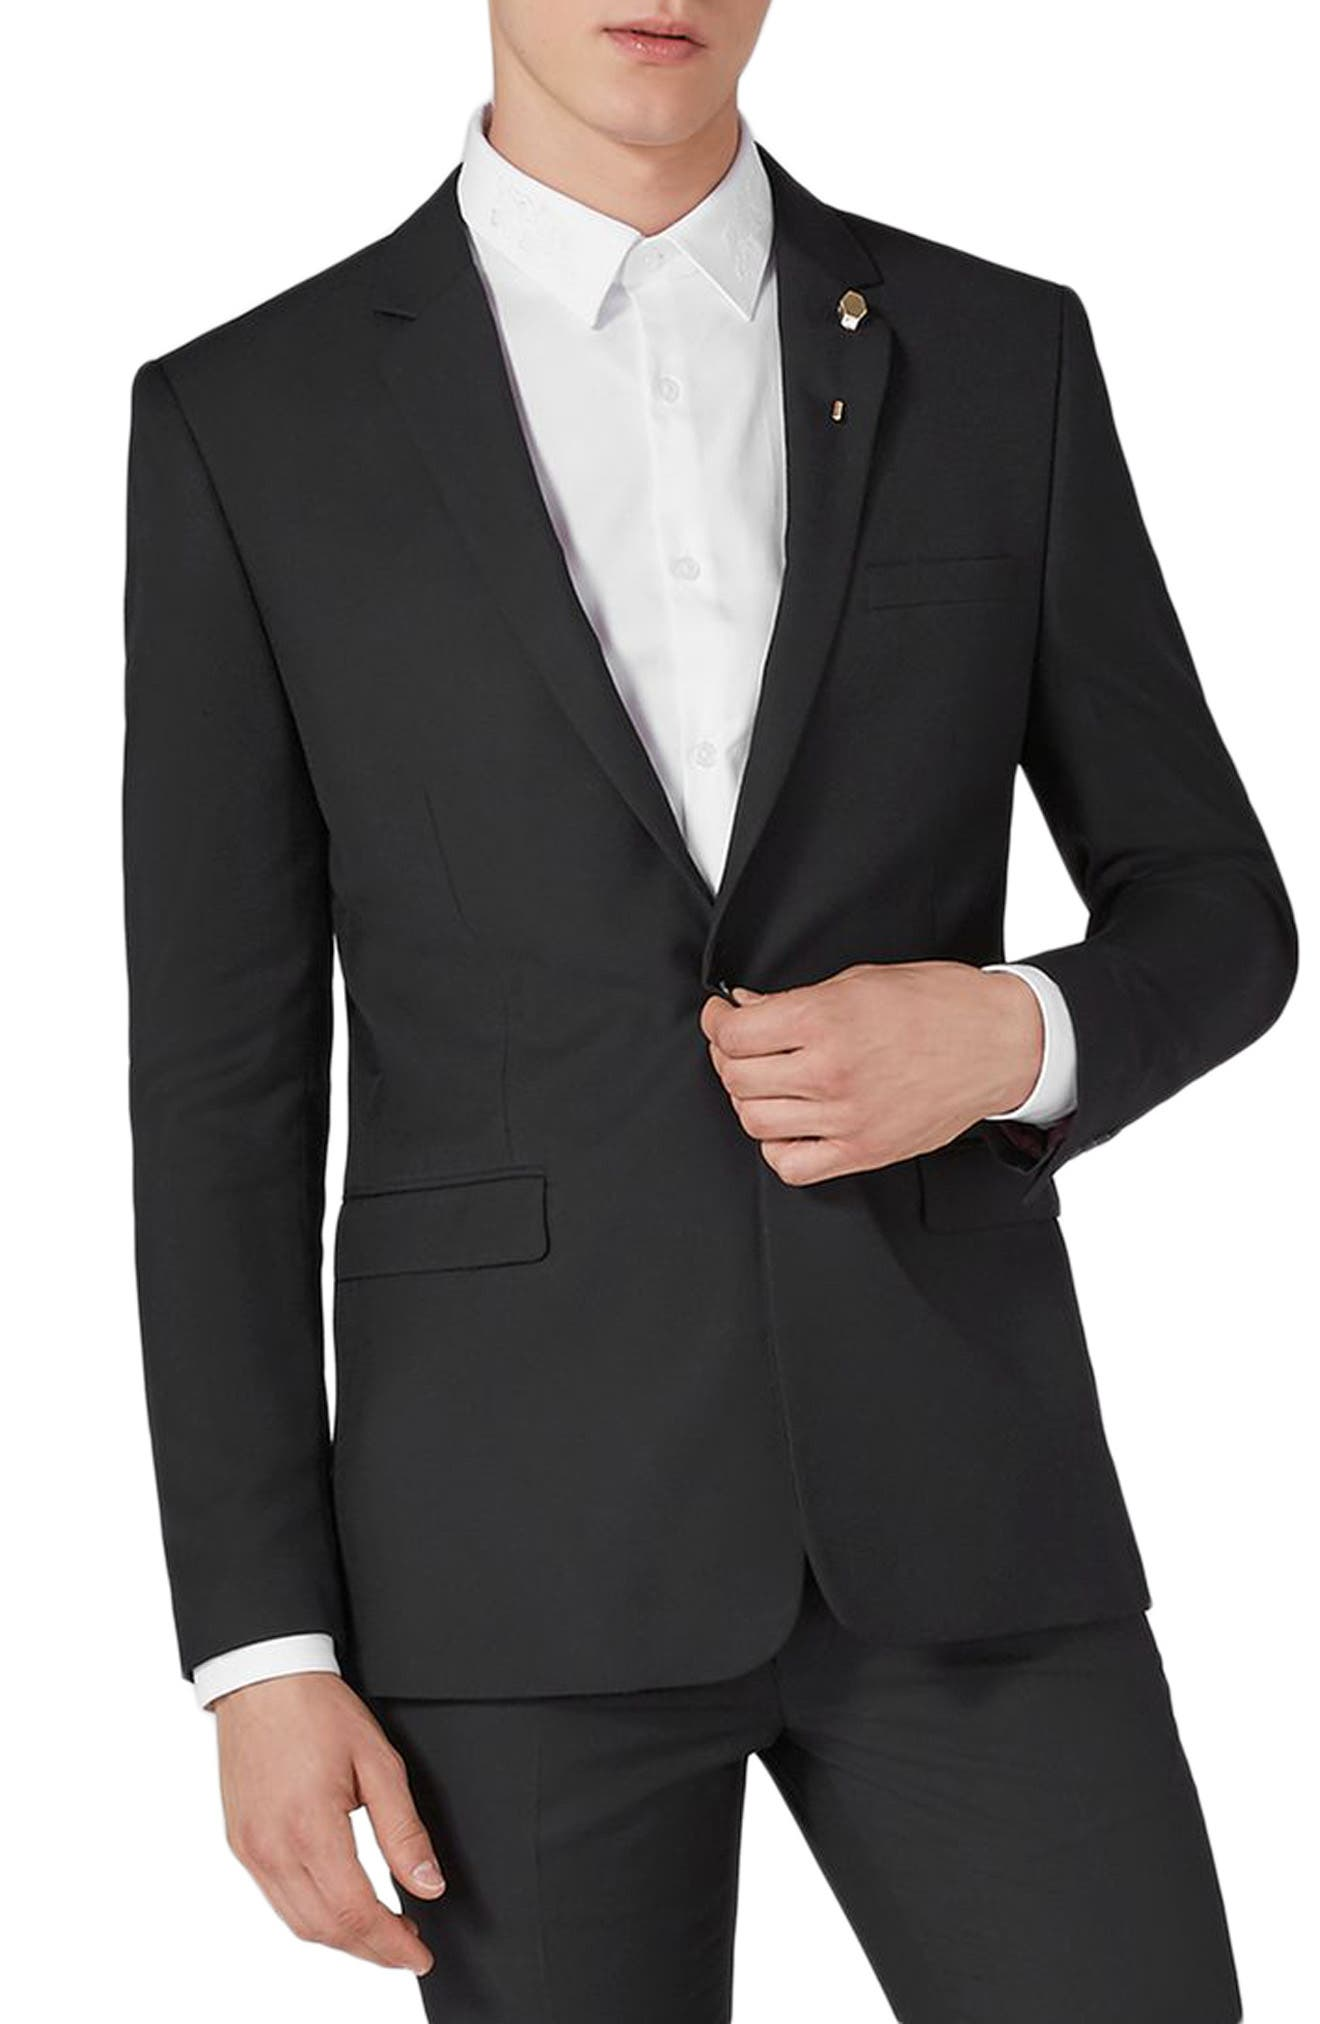 TOPMAN, Skinny Fit One-Button Suit Jacket, Main thumbnail 1, color, BLACK